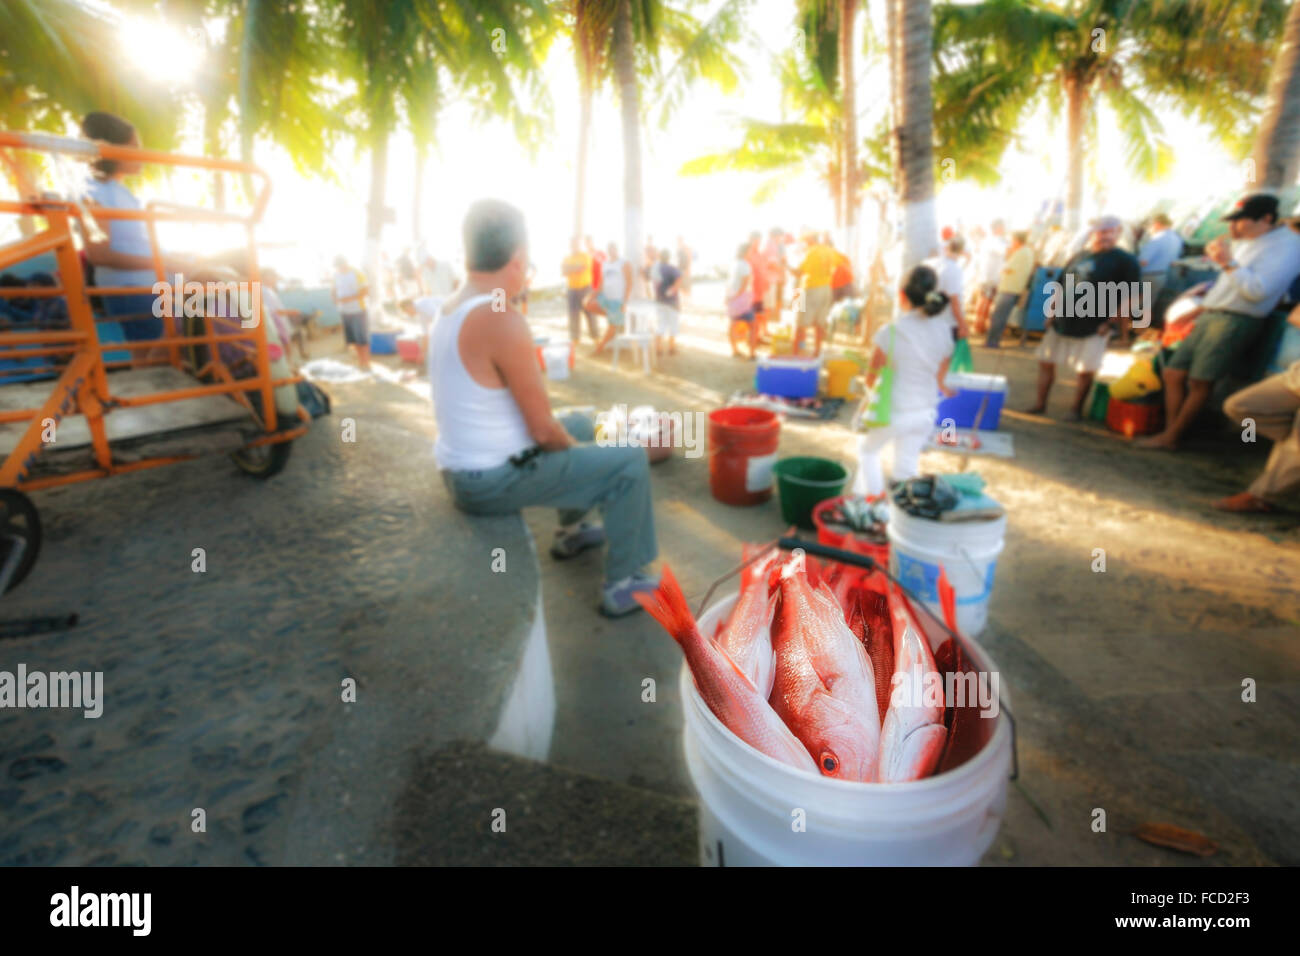 Surreal take on red snapper in a bucket at the open air fish market in Zihuatanejo, Guerrero, Mexico. Stock Photo